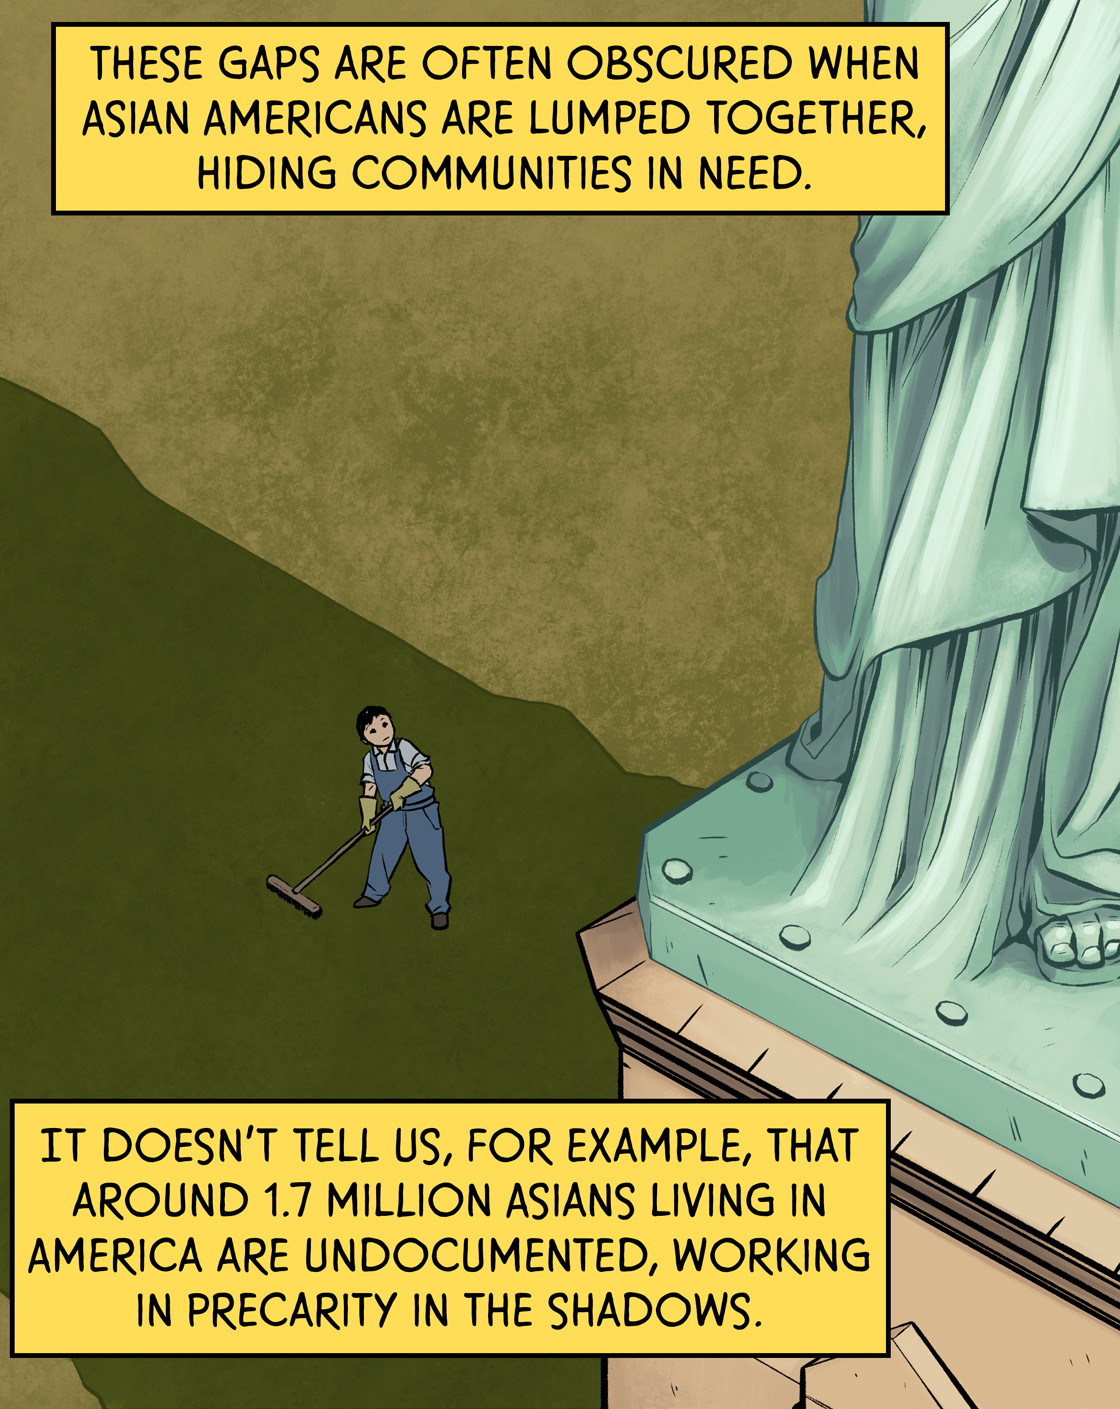 These gaps are often obscured when Asian Americans are lumped together, hidingcommunities in need. It doesn't tell us, for example, that around 1.7 million Asians living in America are undocumented, working in precarity in the shadows.